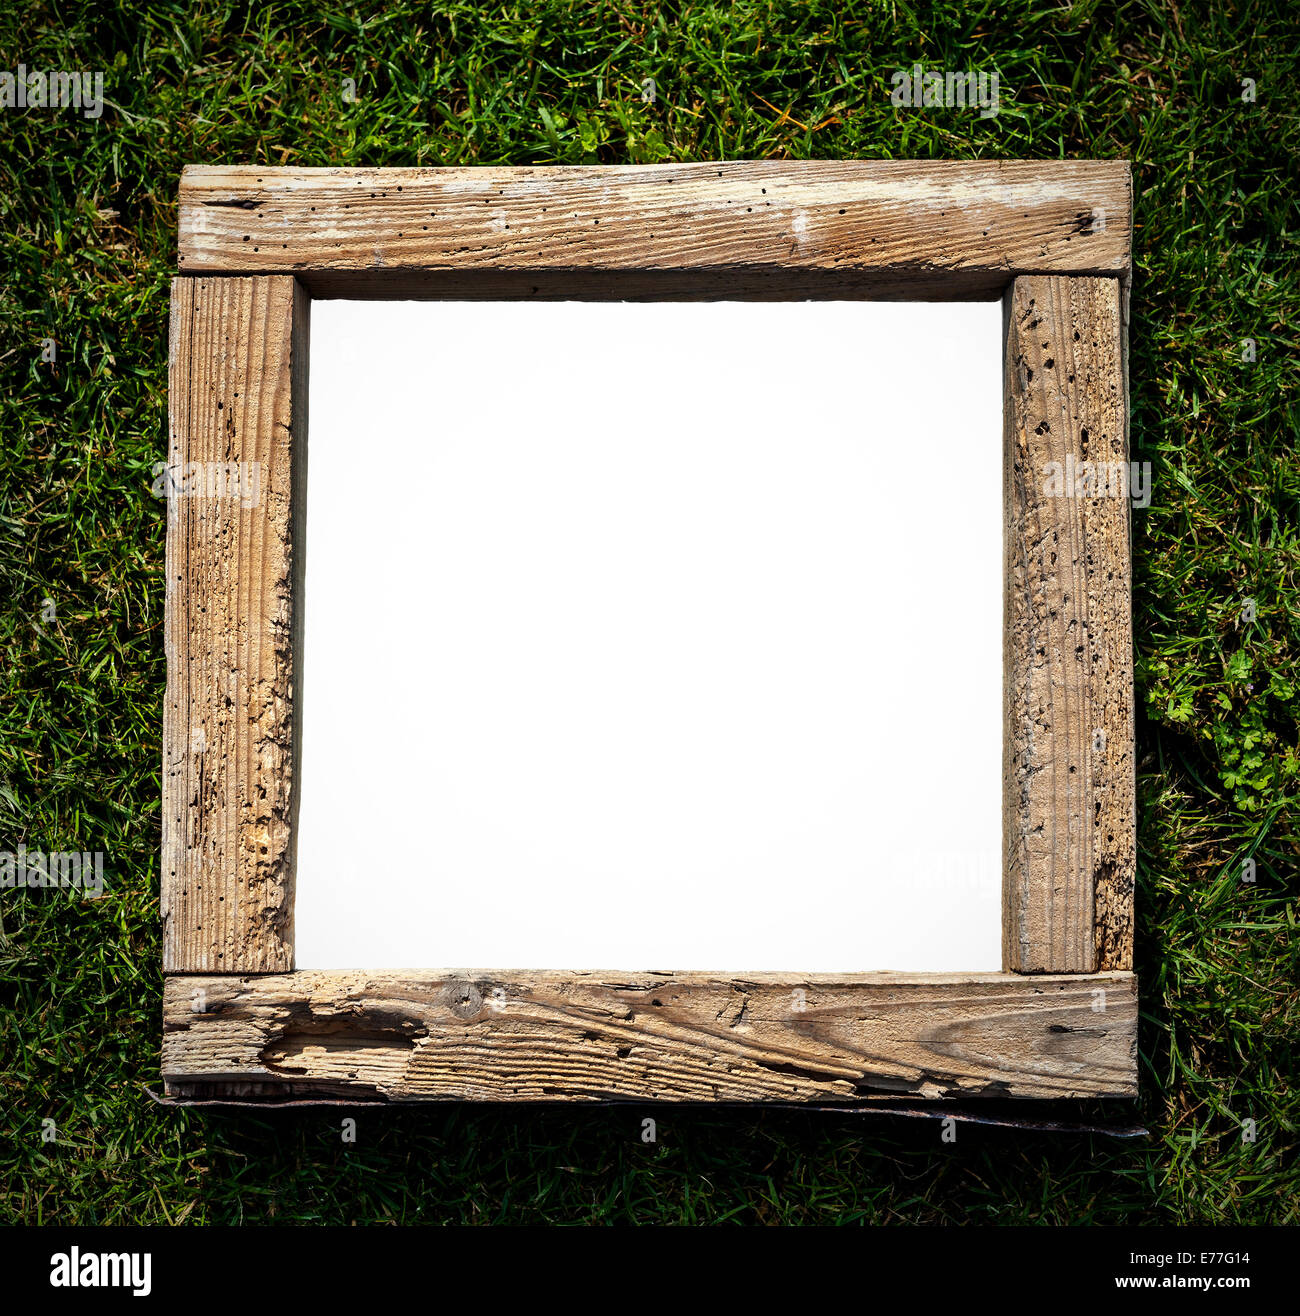 Rustic old grunge wood frame on grass, empty space for text. - Stock Image